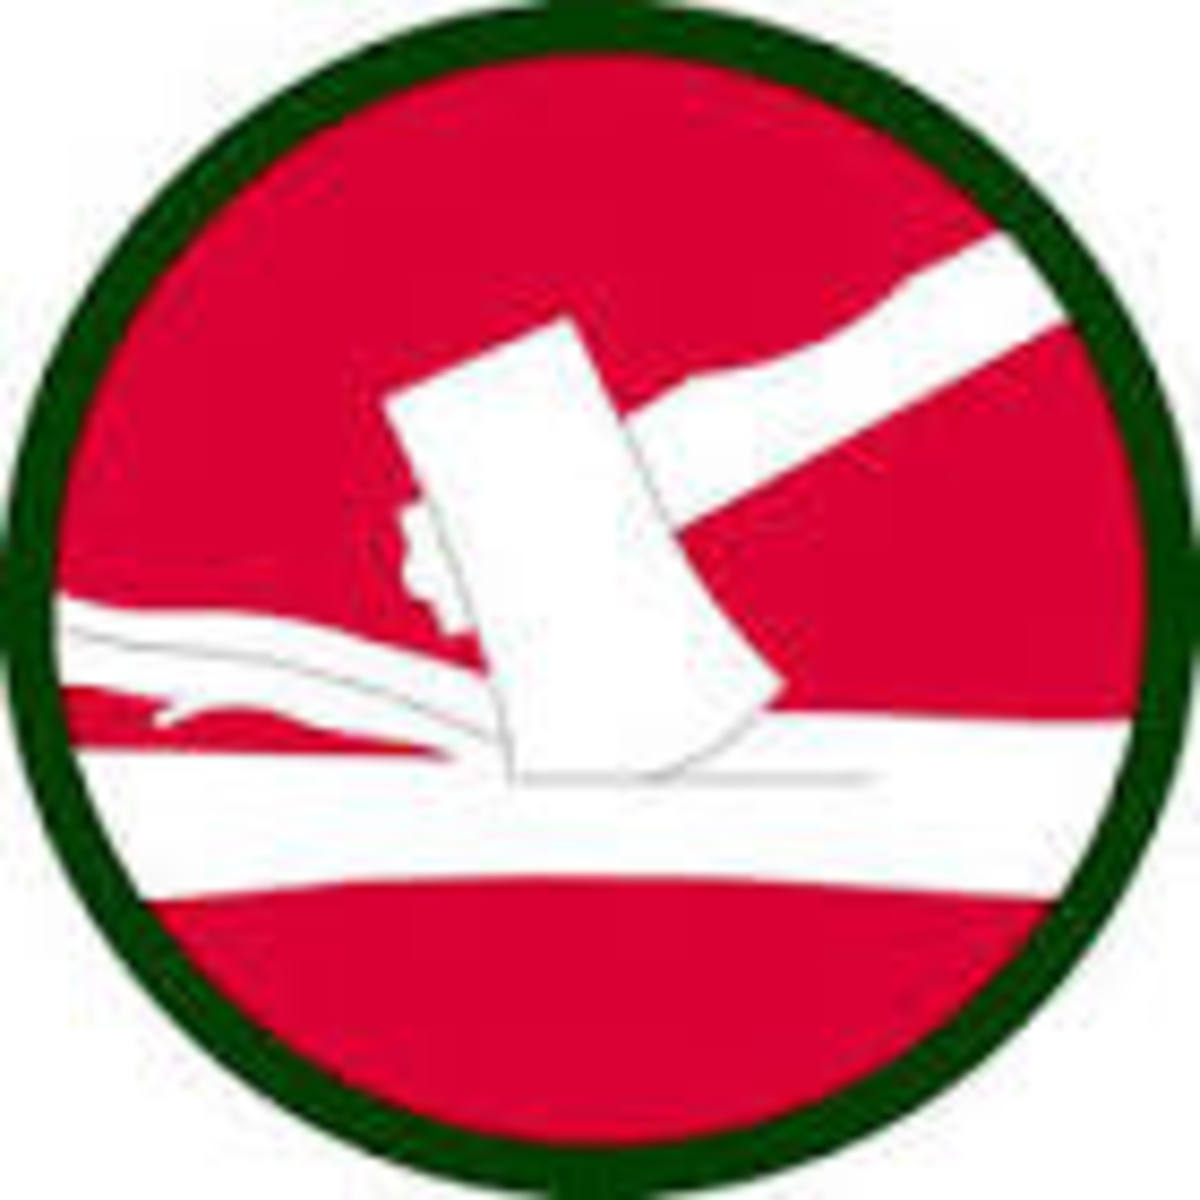 Emblem of the 84th Division known as the Railsplitters.